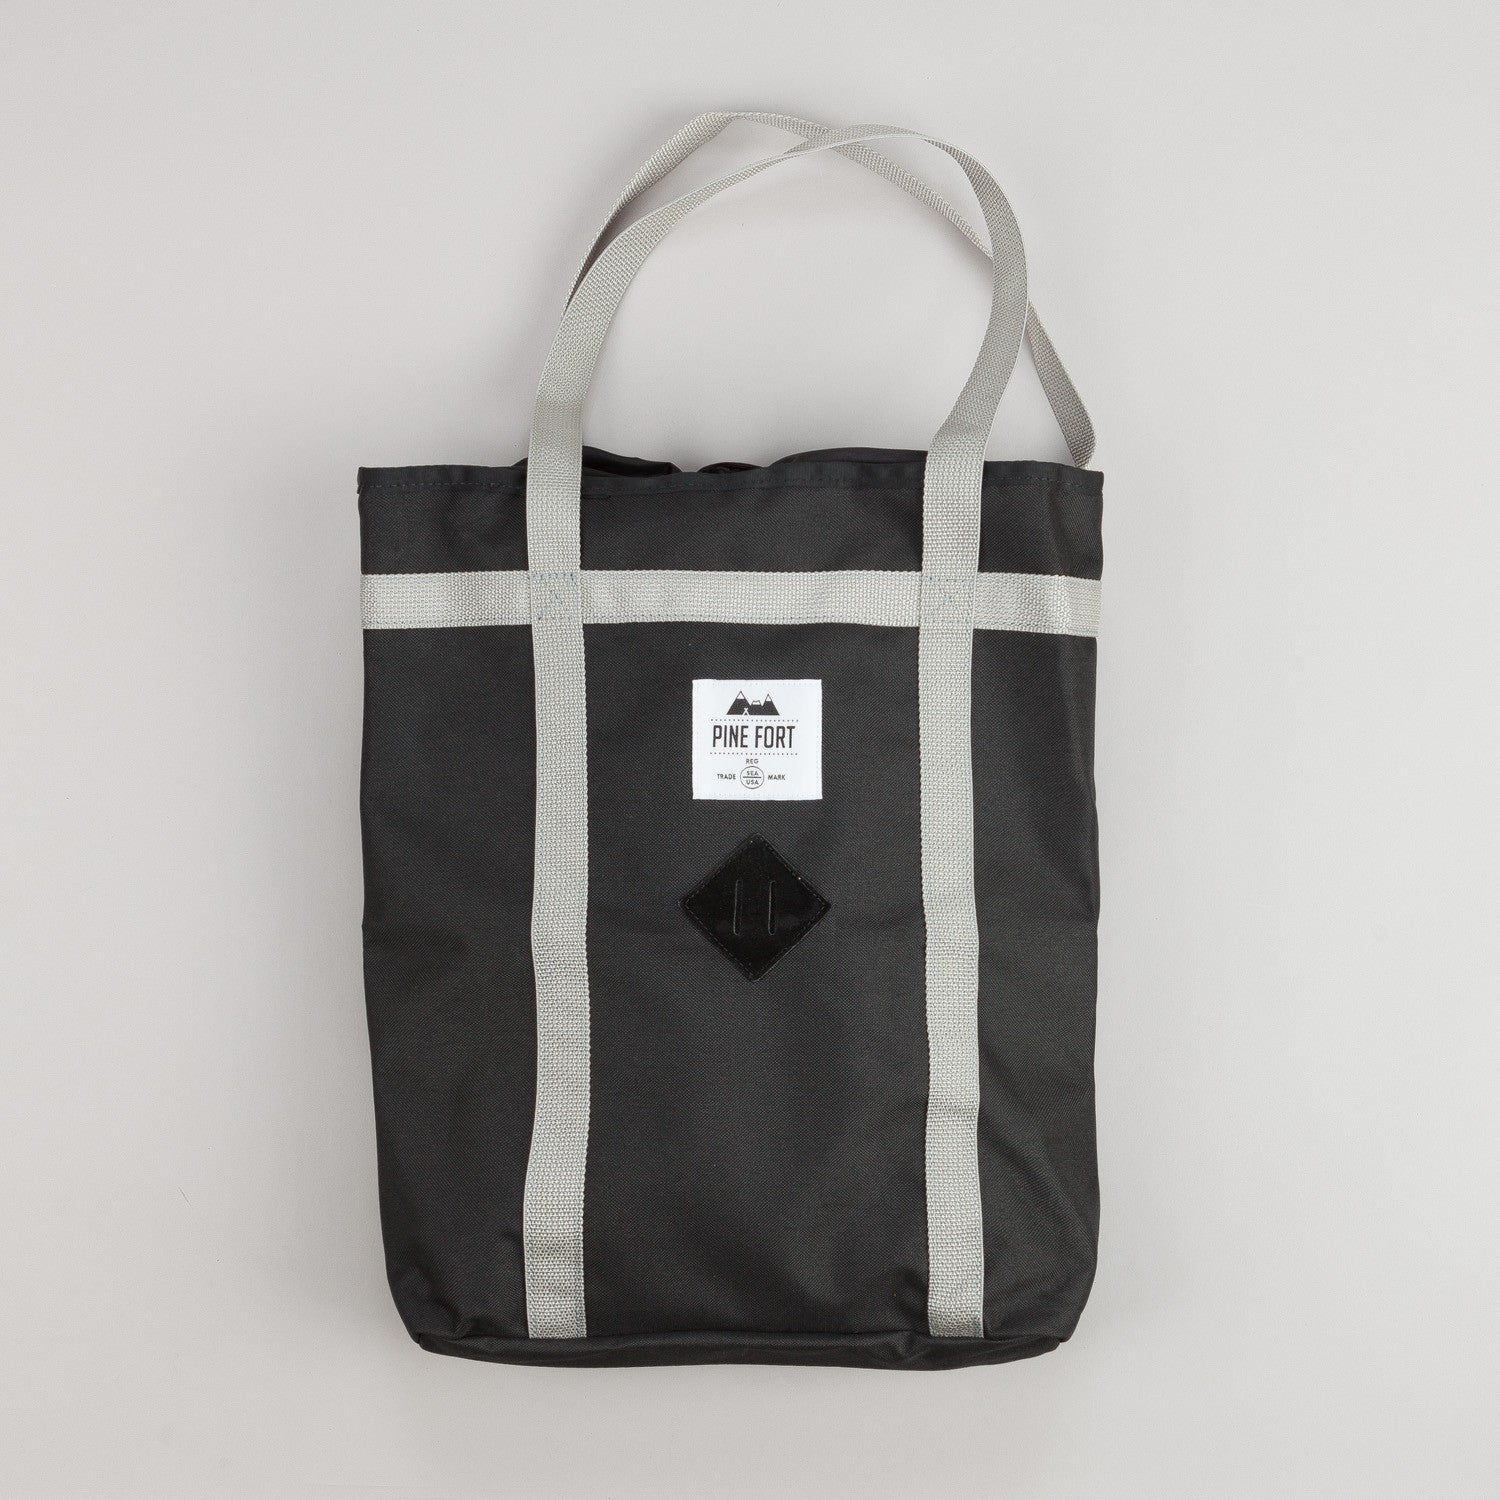 Pine Fort Climing Tote Black / Silver